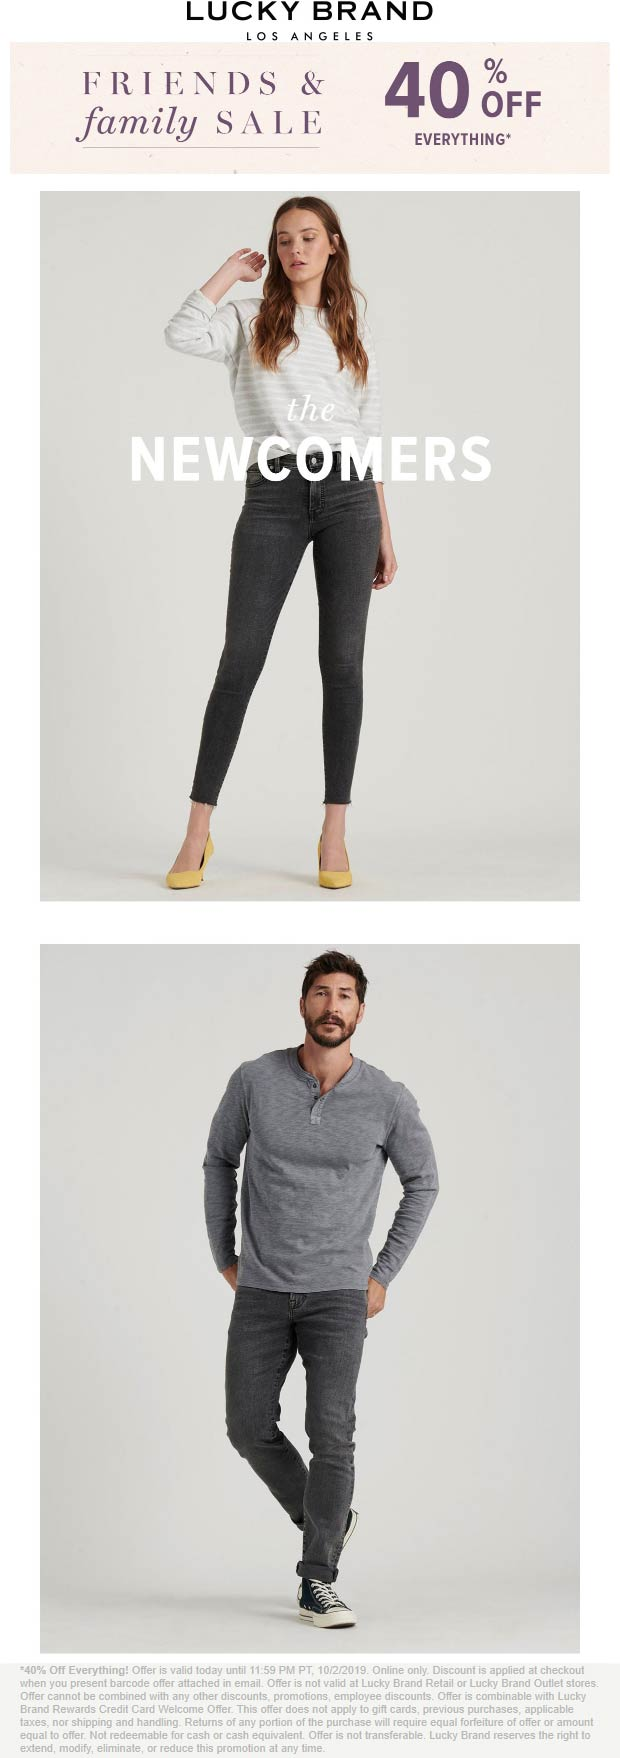 Lucky Brand Coupon November 2019 40% off everything online at Lucky Brand, no code needed